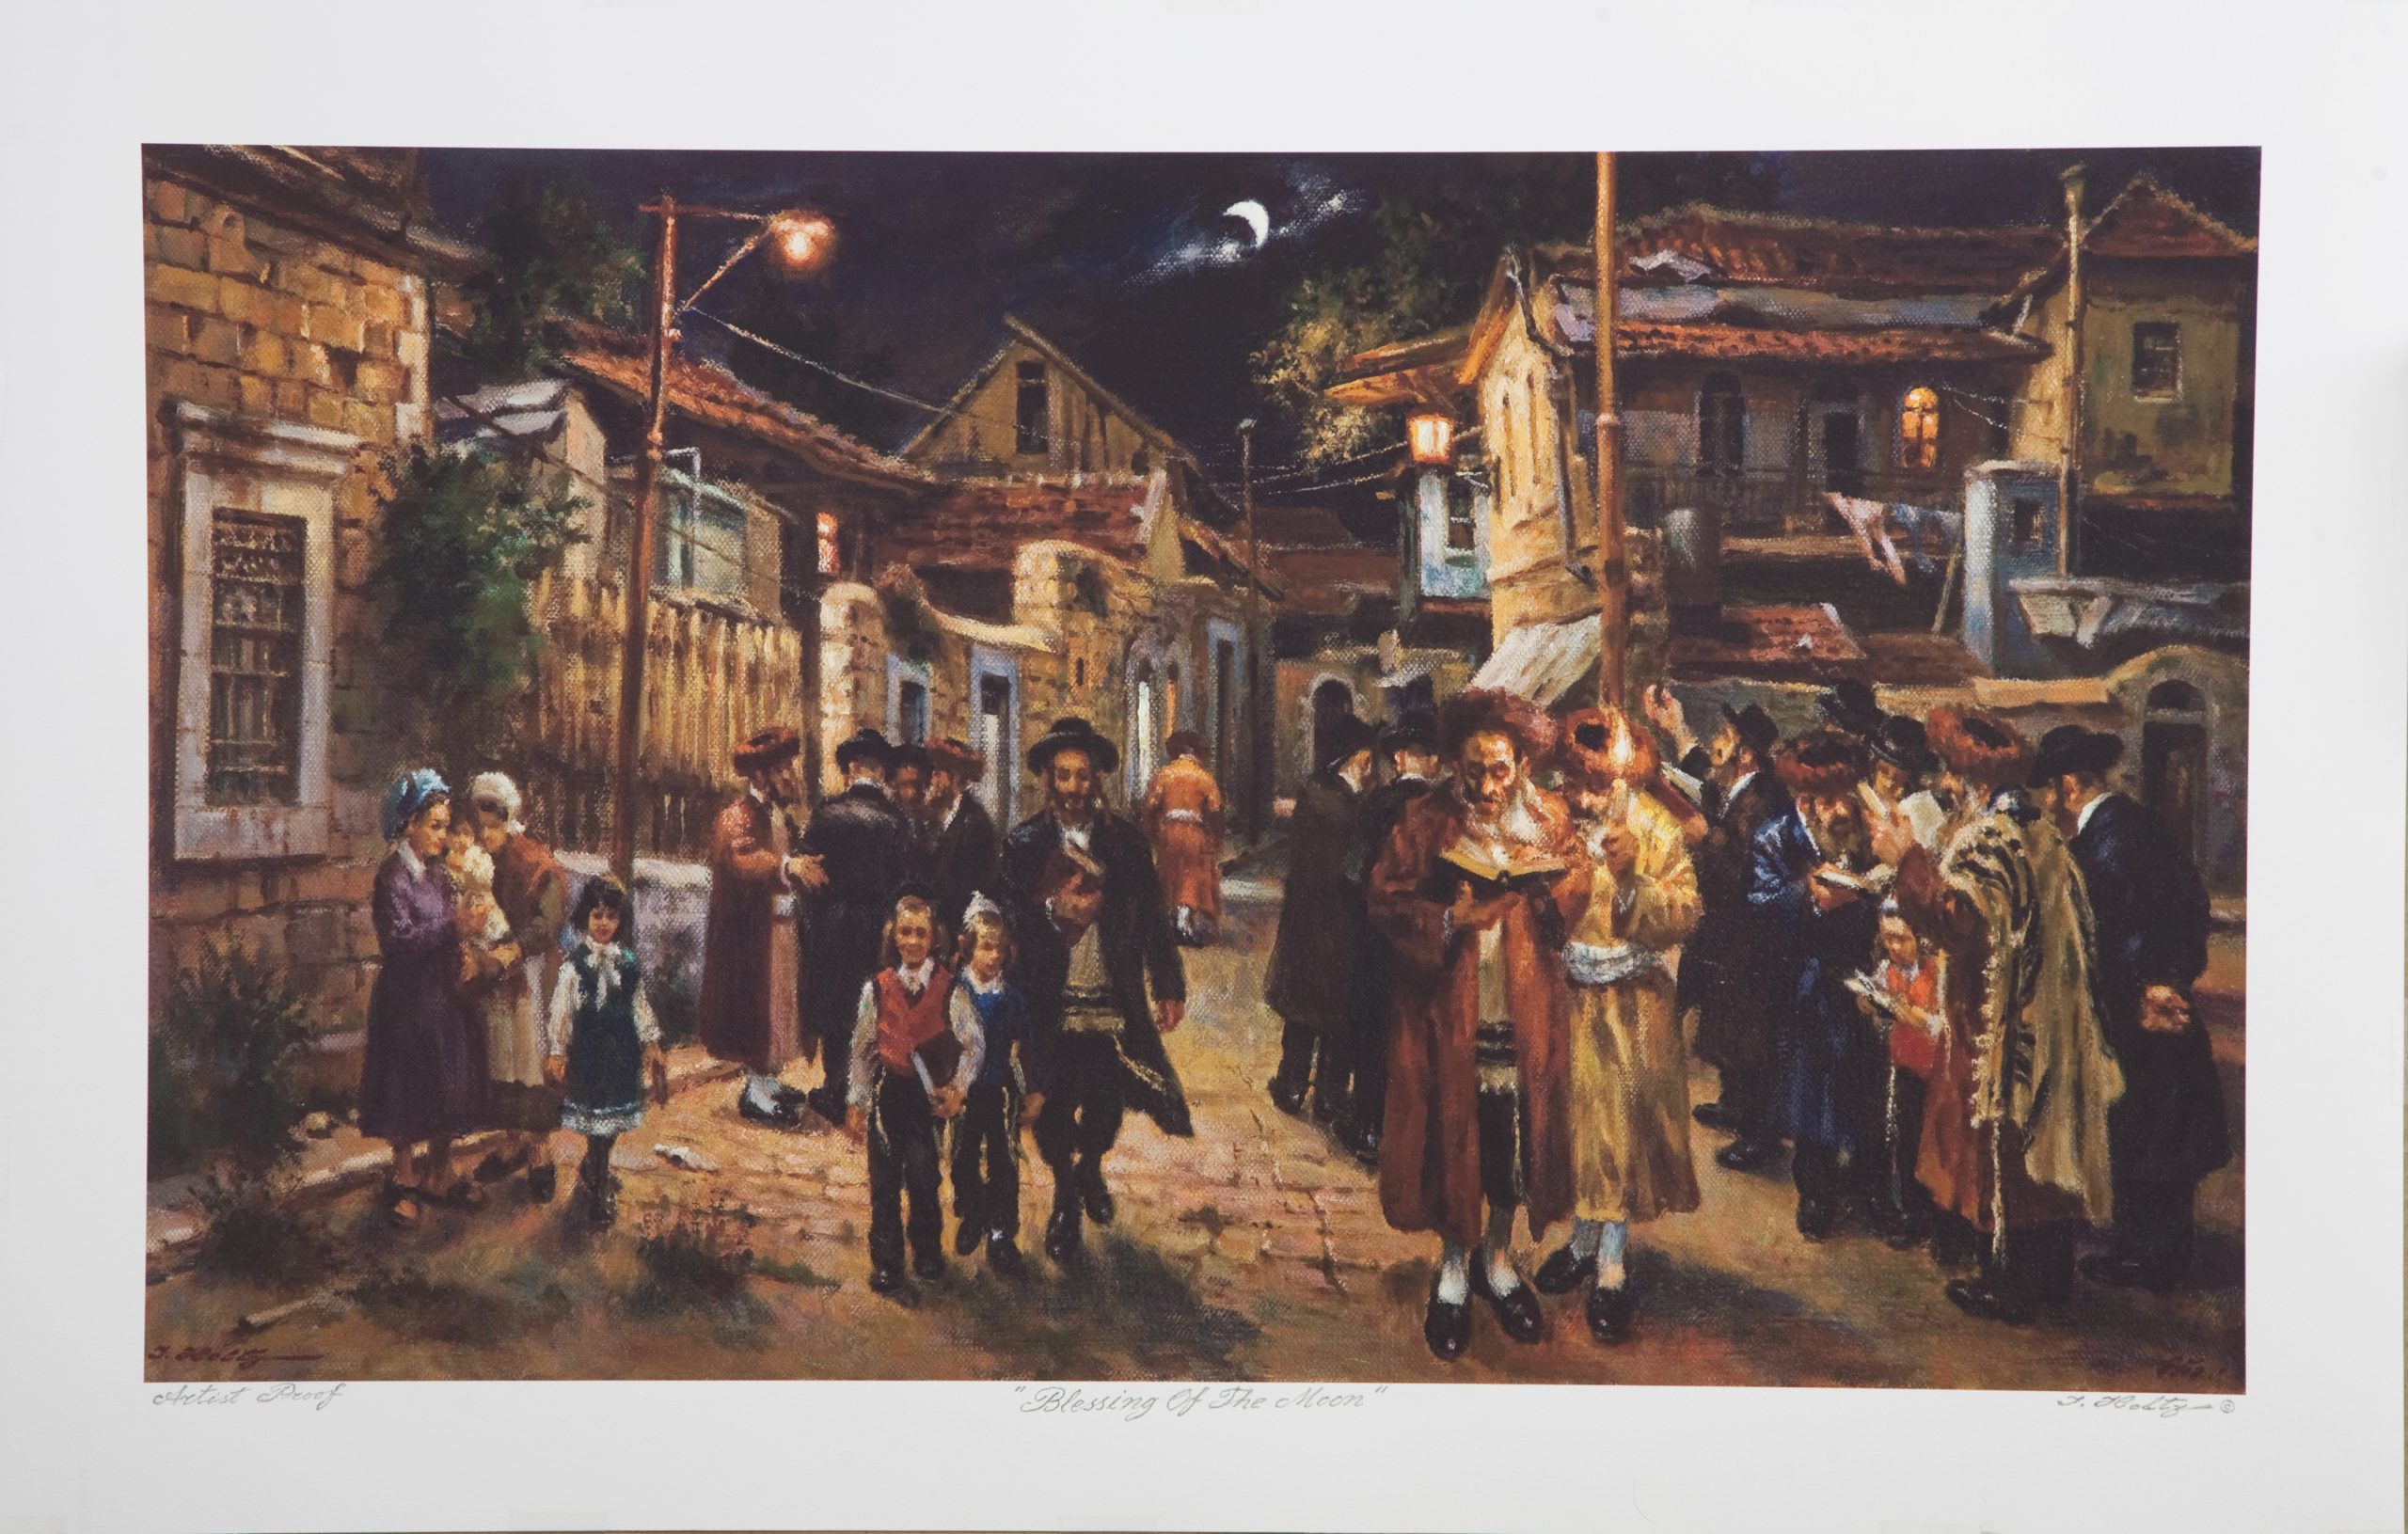 L08 Blessing of the Moon - Color - Lithograph - 29.5 x 19 - No Frame - $700